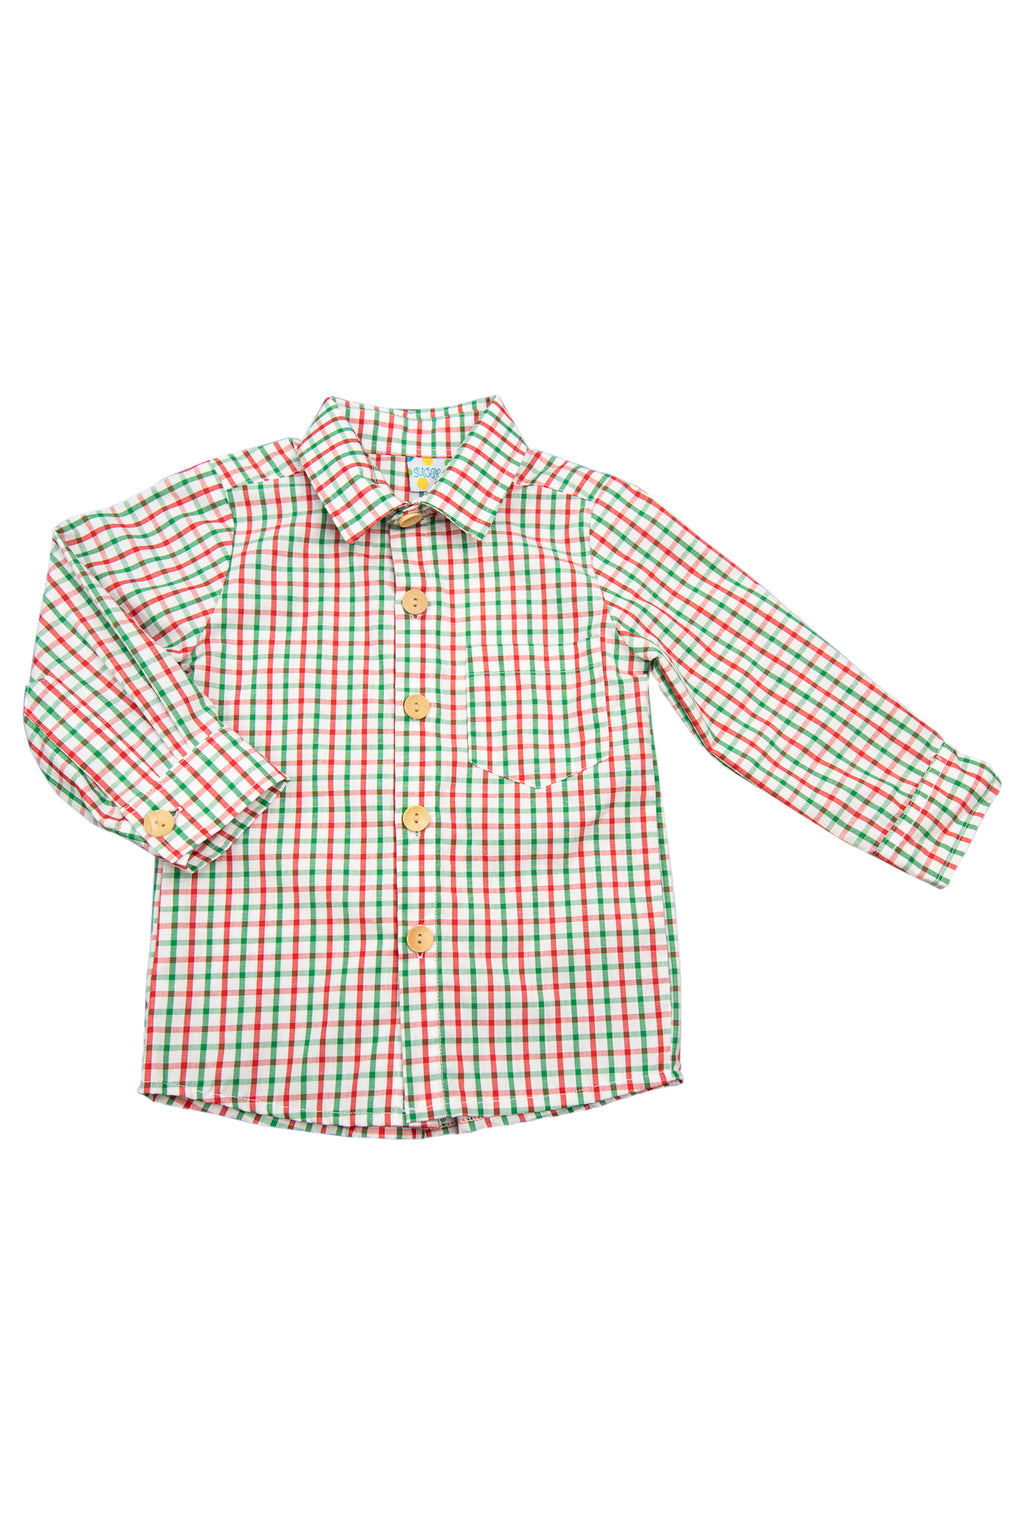 Boys Red and Green Windowpane Shirt Only